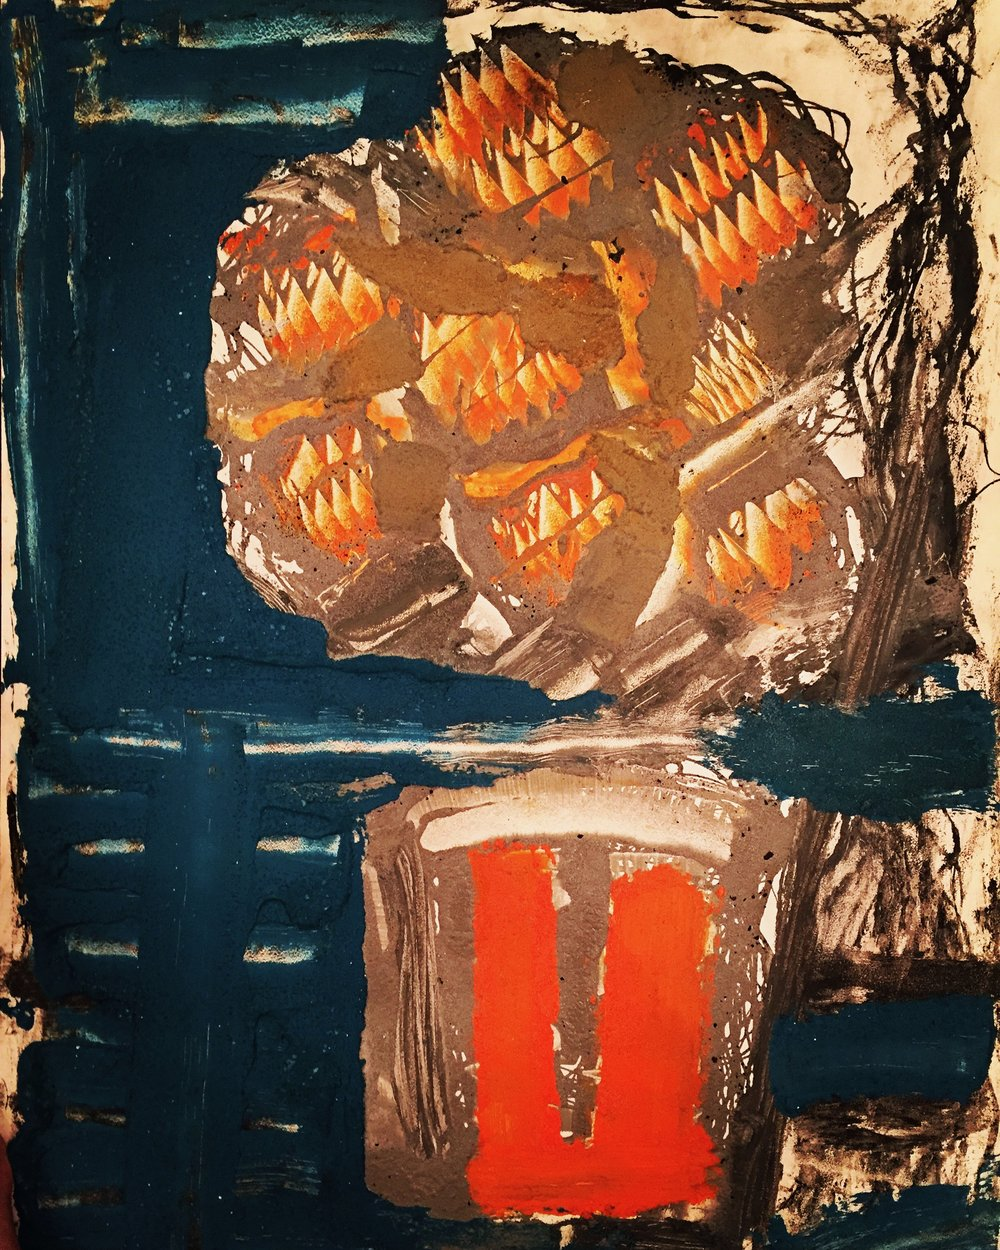 Orange flowers orange pot 2016, cement and pigment on panel, 79x61cm (image), 88.5x69.5cm (framed). (sold)